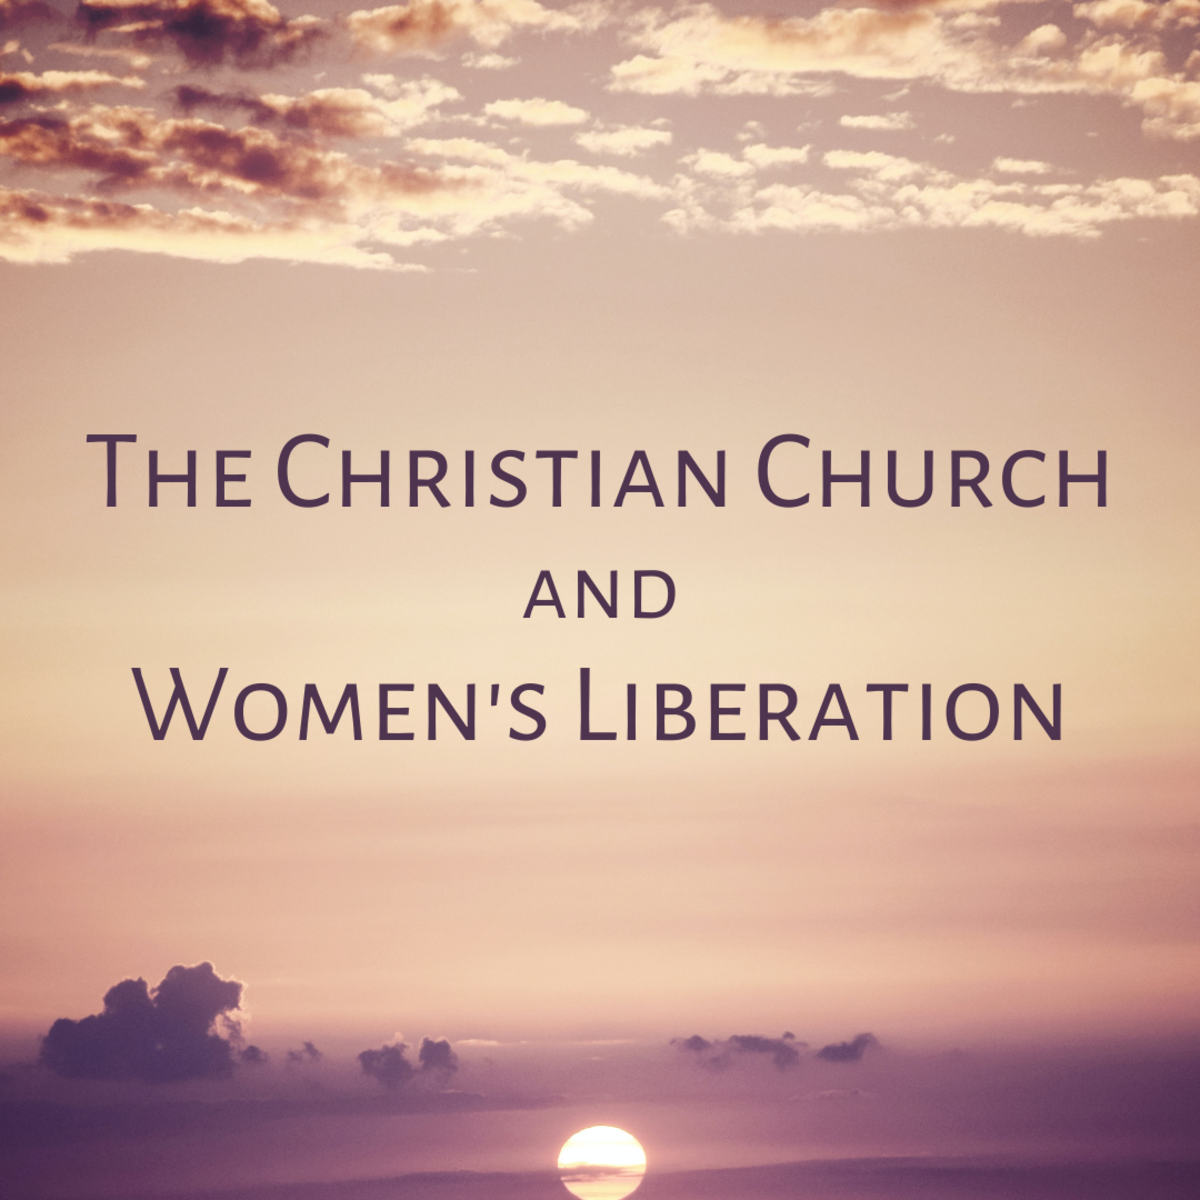 Does the Christian church support women's progress towards equality or hamper it?